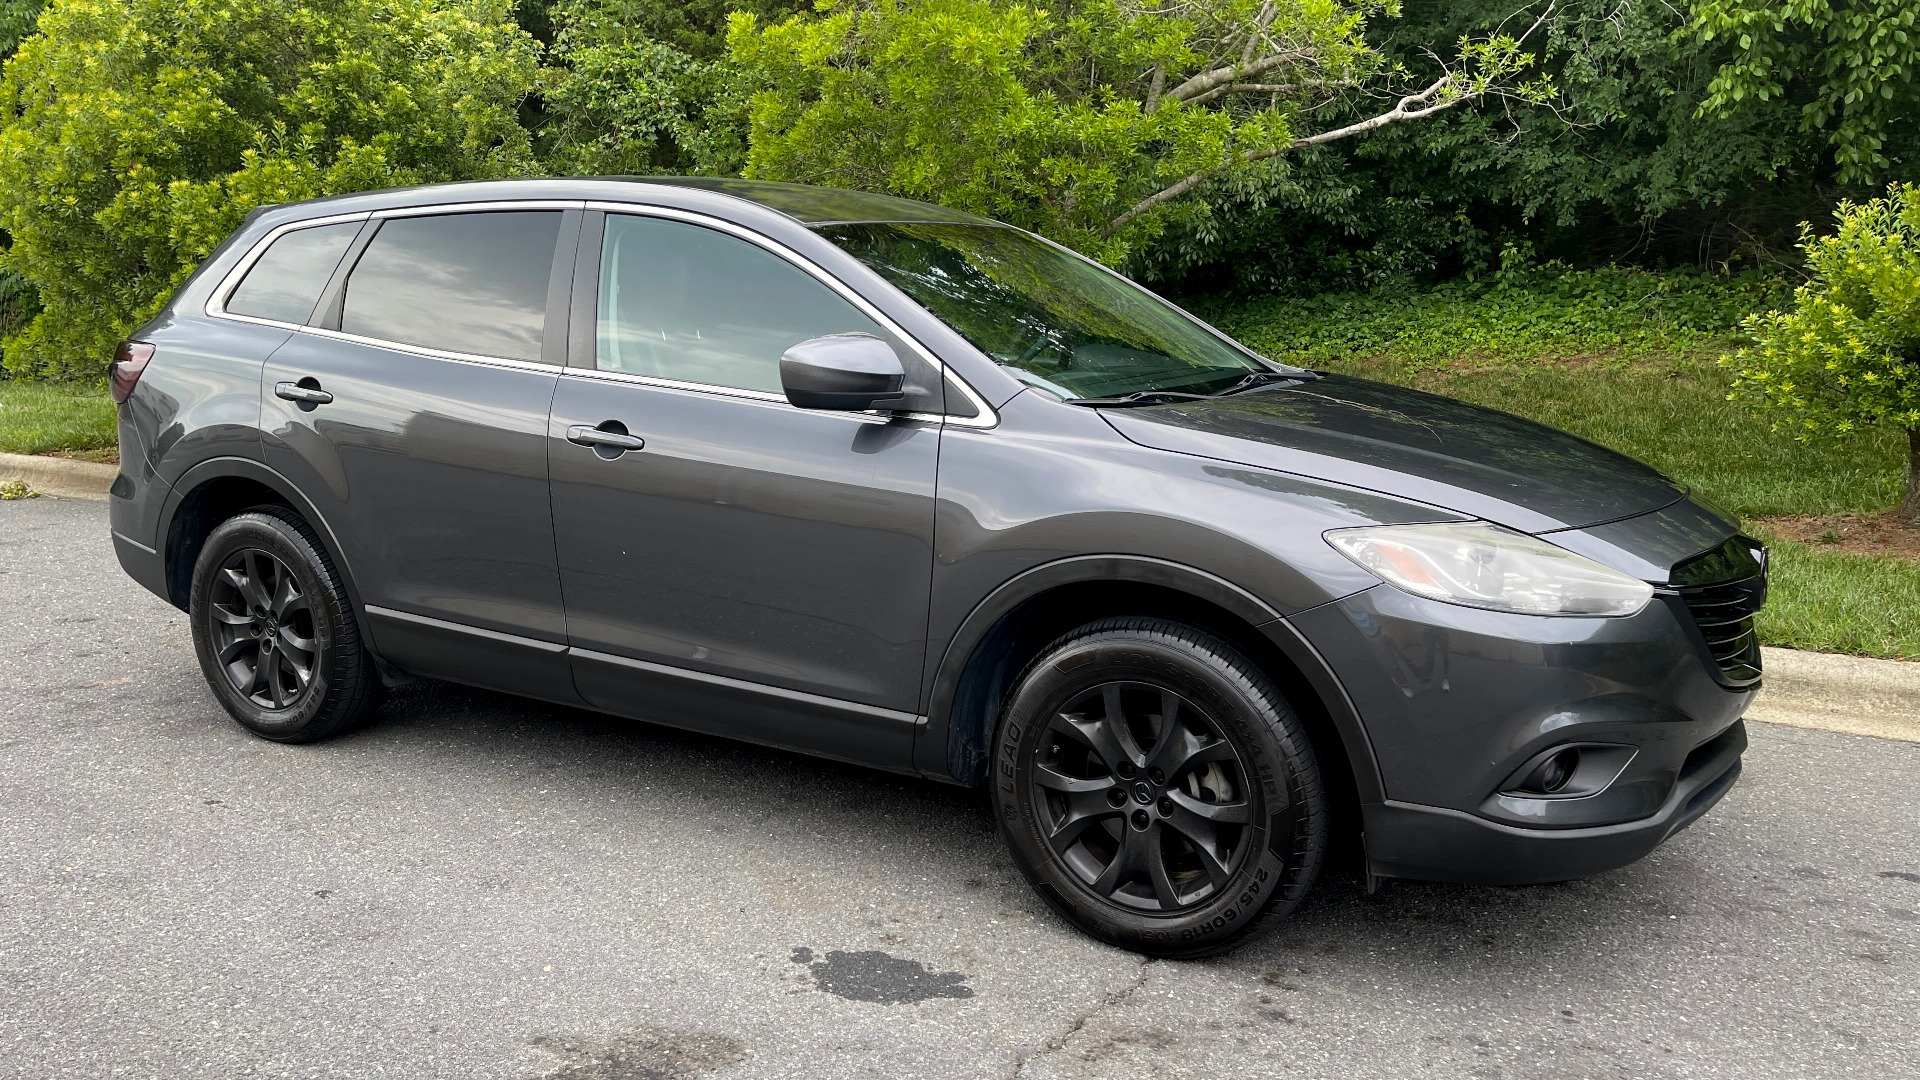 Used 2014 Mazda CX-9 TOURUNG / FWD / 3.7L V6 / 6-SPD AUTO / HTD STS / 3-ROW / REARVIEW for sale $14,995 at Formula Imports in Charlotte NC 28227 5